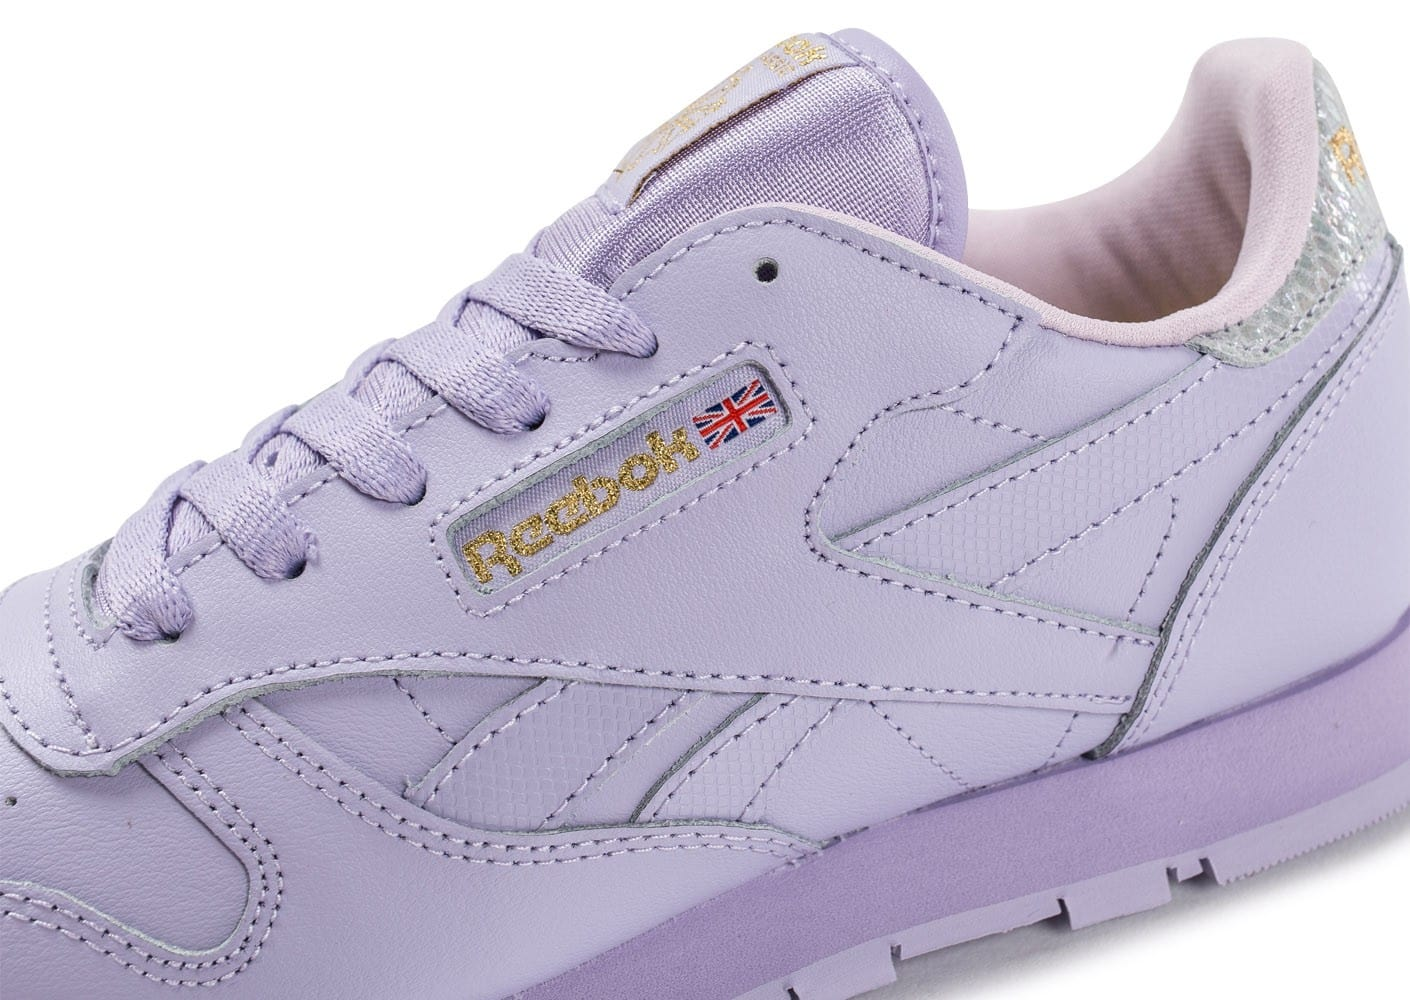 218680f3dad Reebok Classic Leather Metallic mauve - Chaussures Chaussures ...